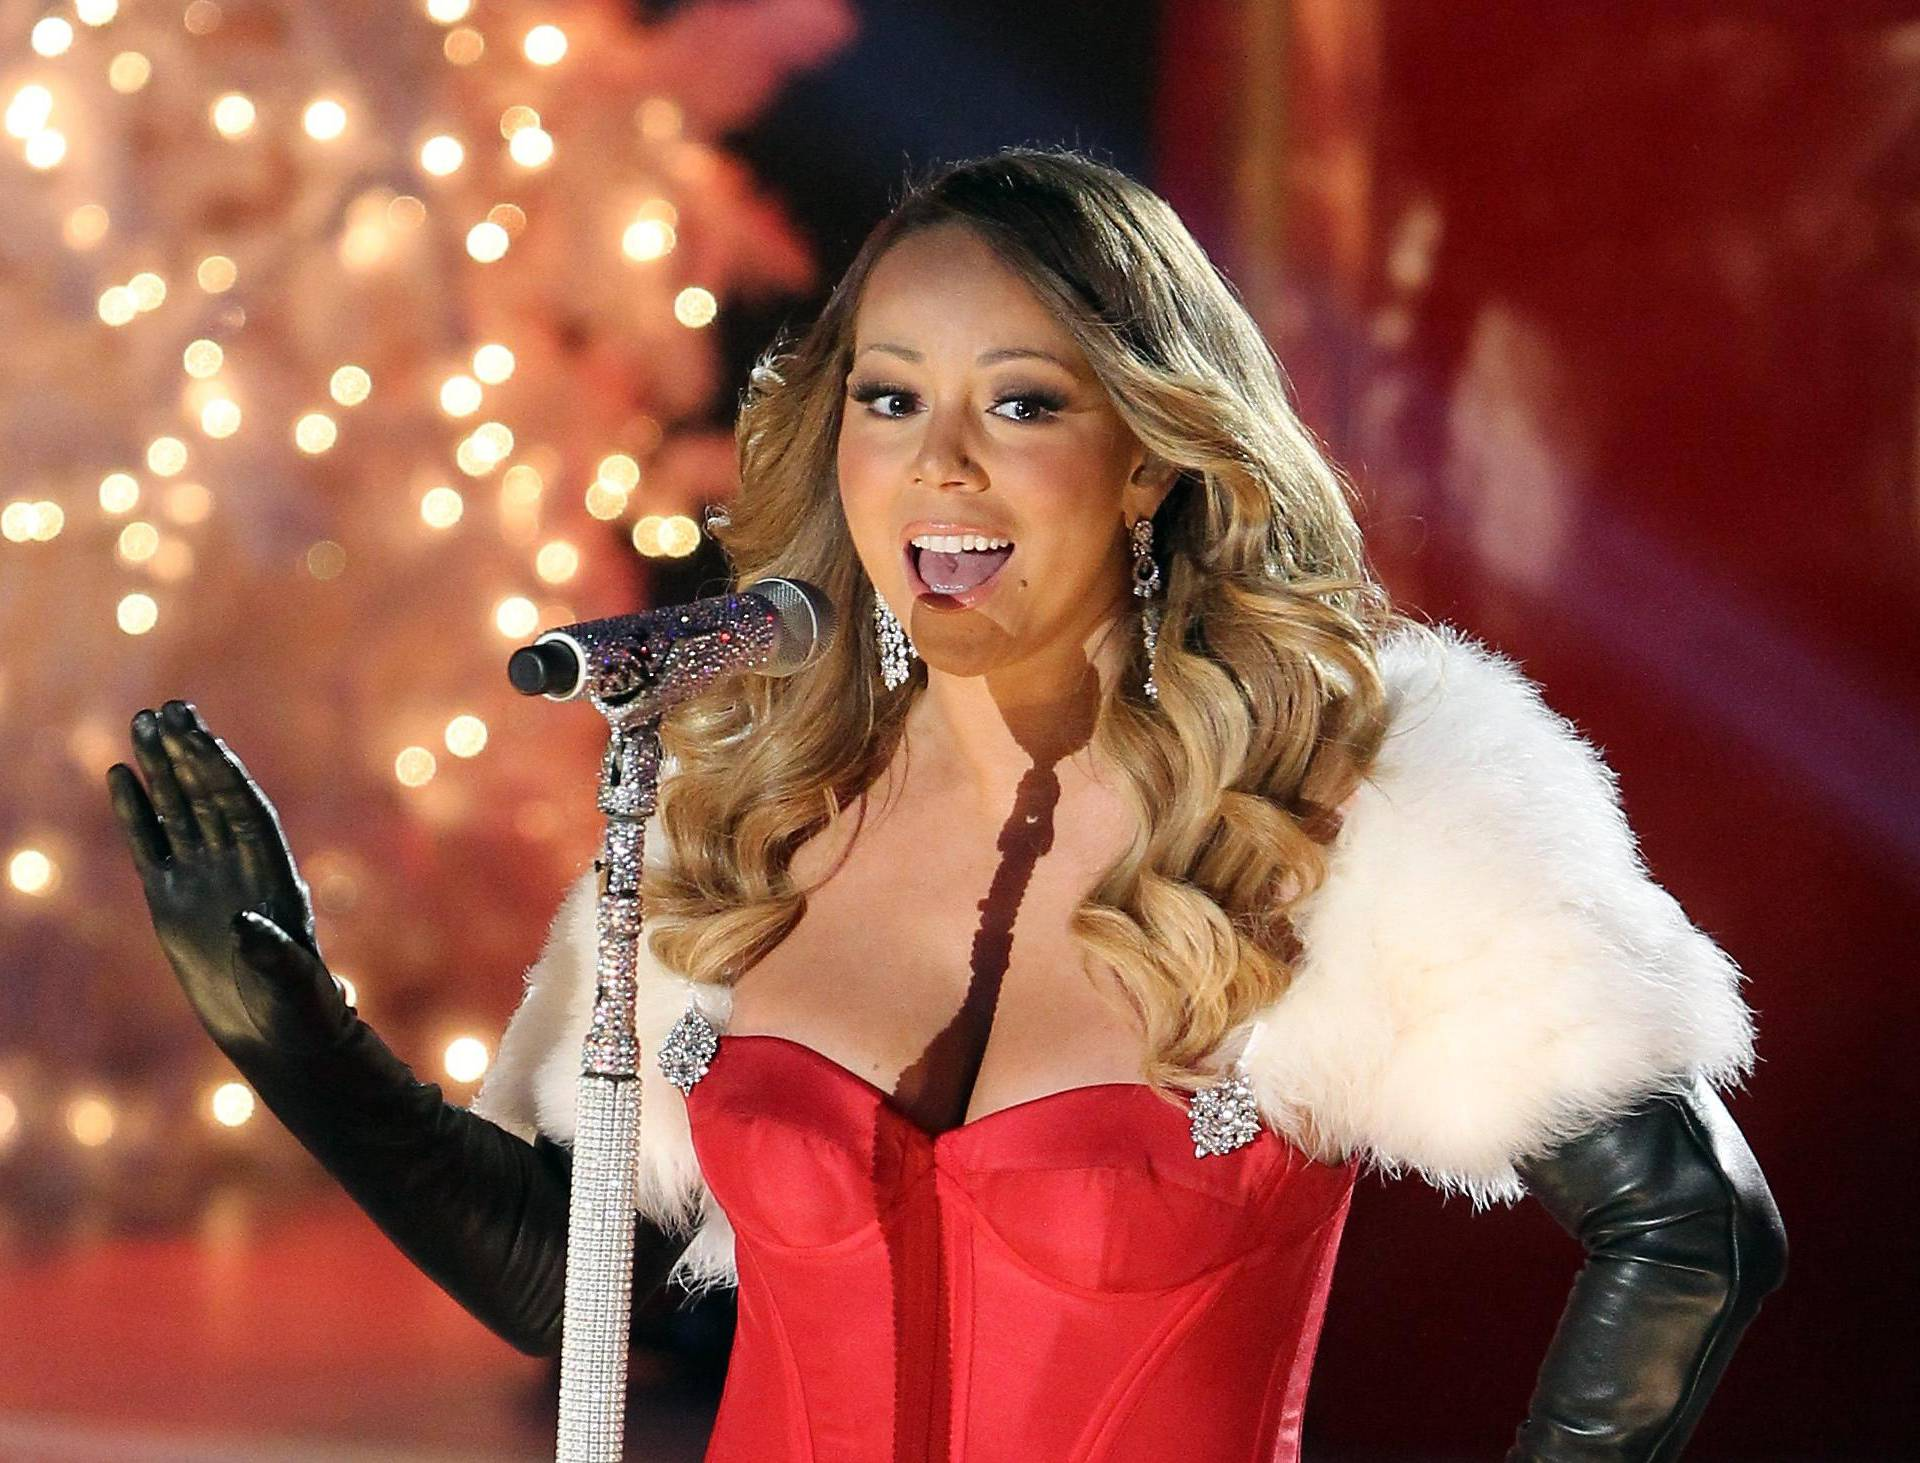 Mariah Carey singing at The Rockefeller Center in New York